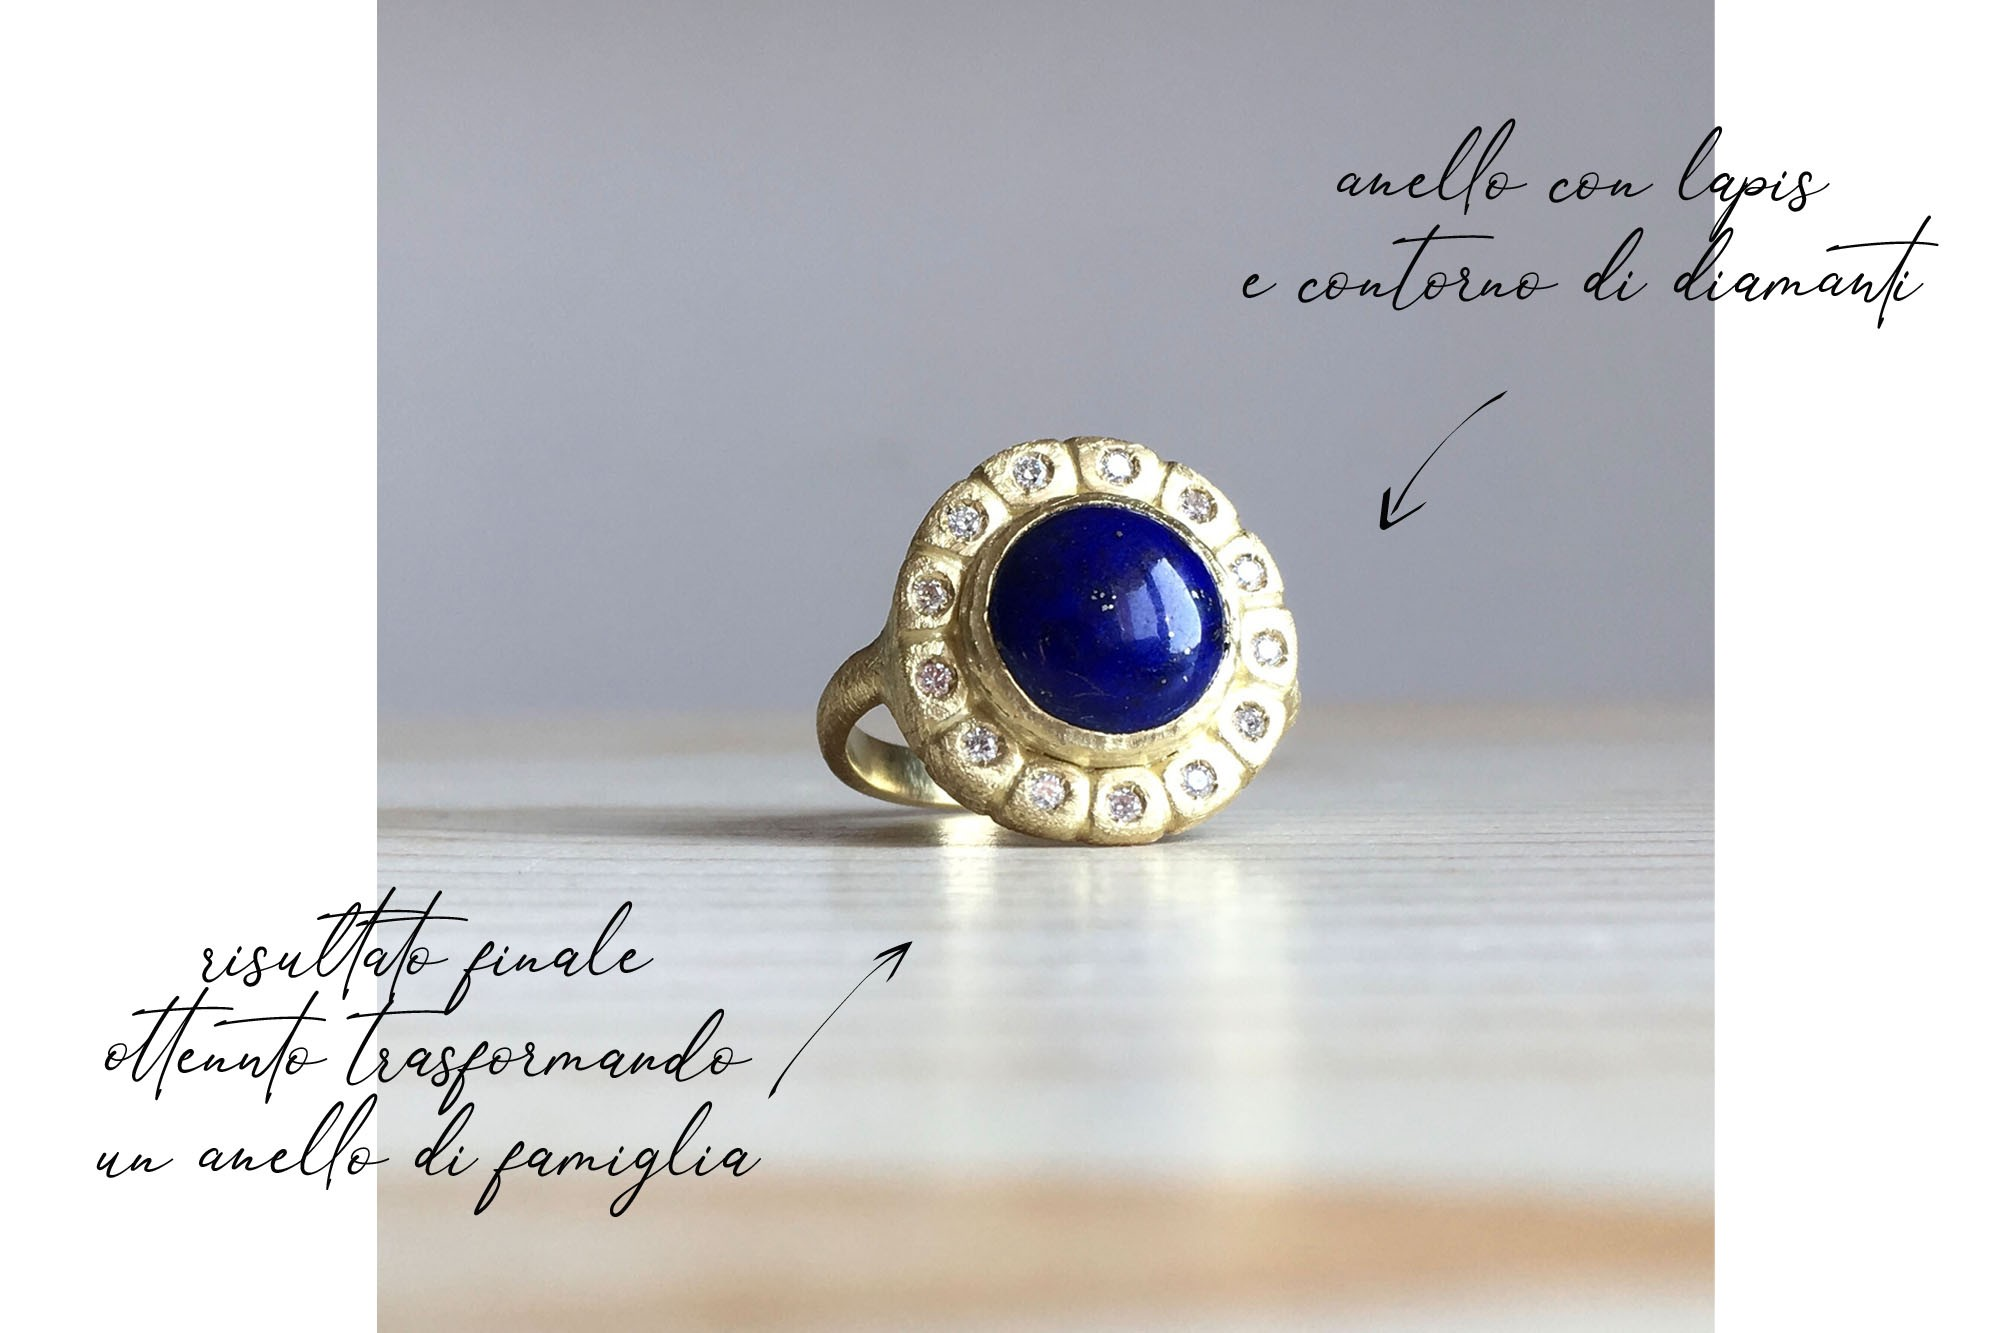 anello con lapis e diamanti My Golden Age